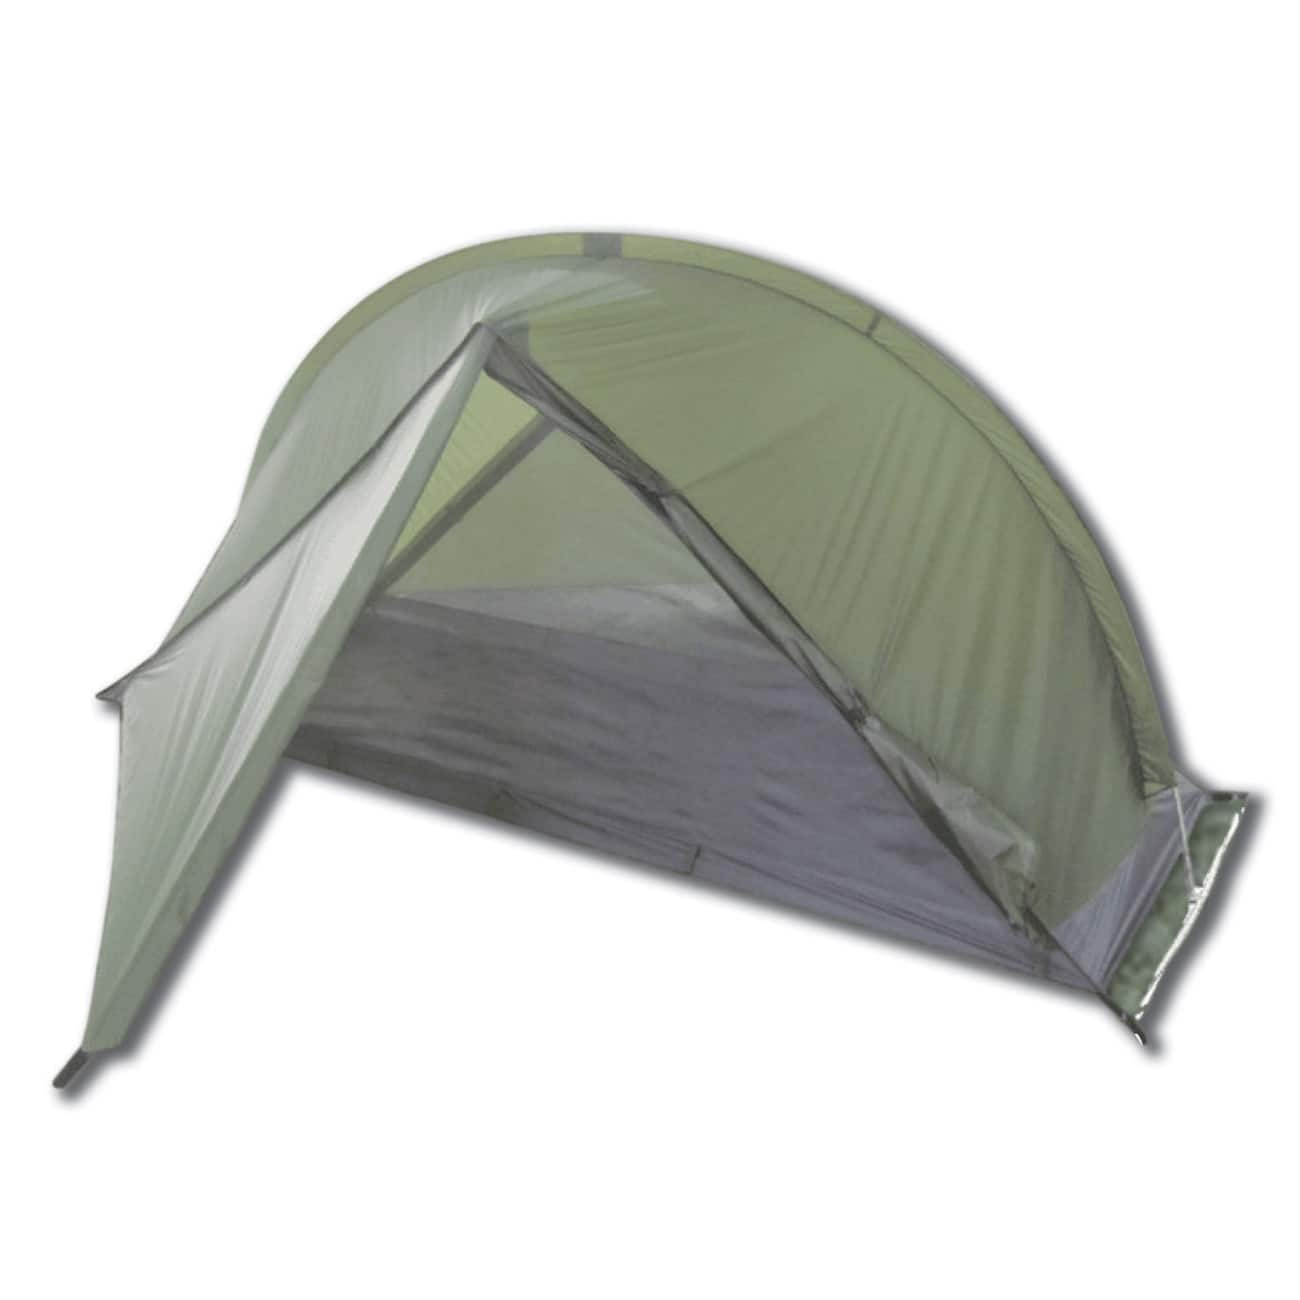 Ozark Trail 1-Person Lightweight Backpacking Tent $34 + Free store pickup at Walmart